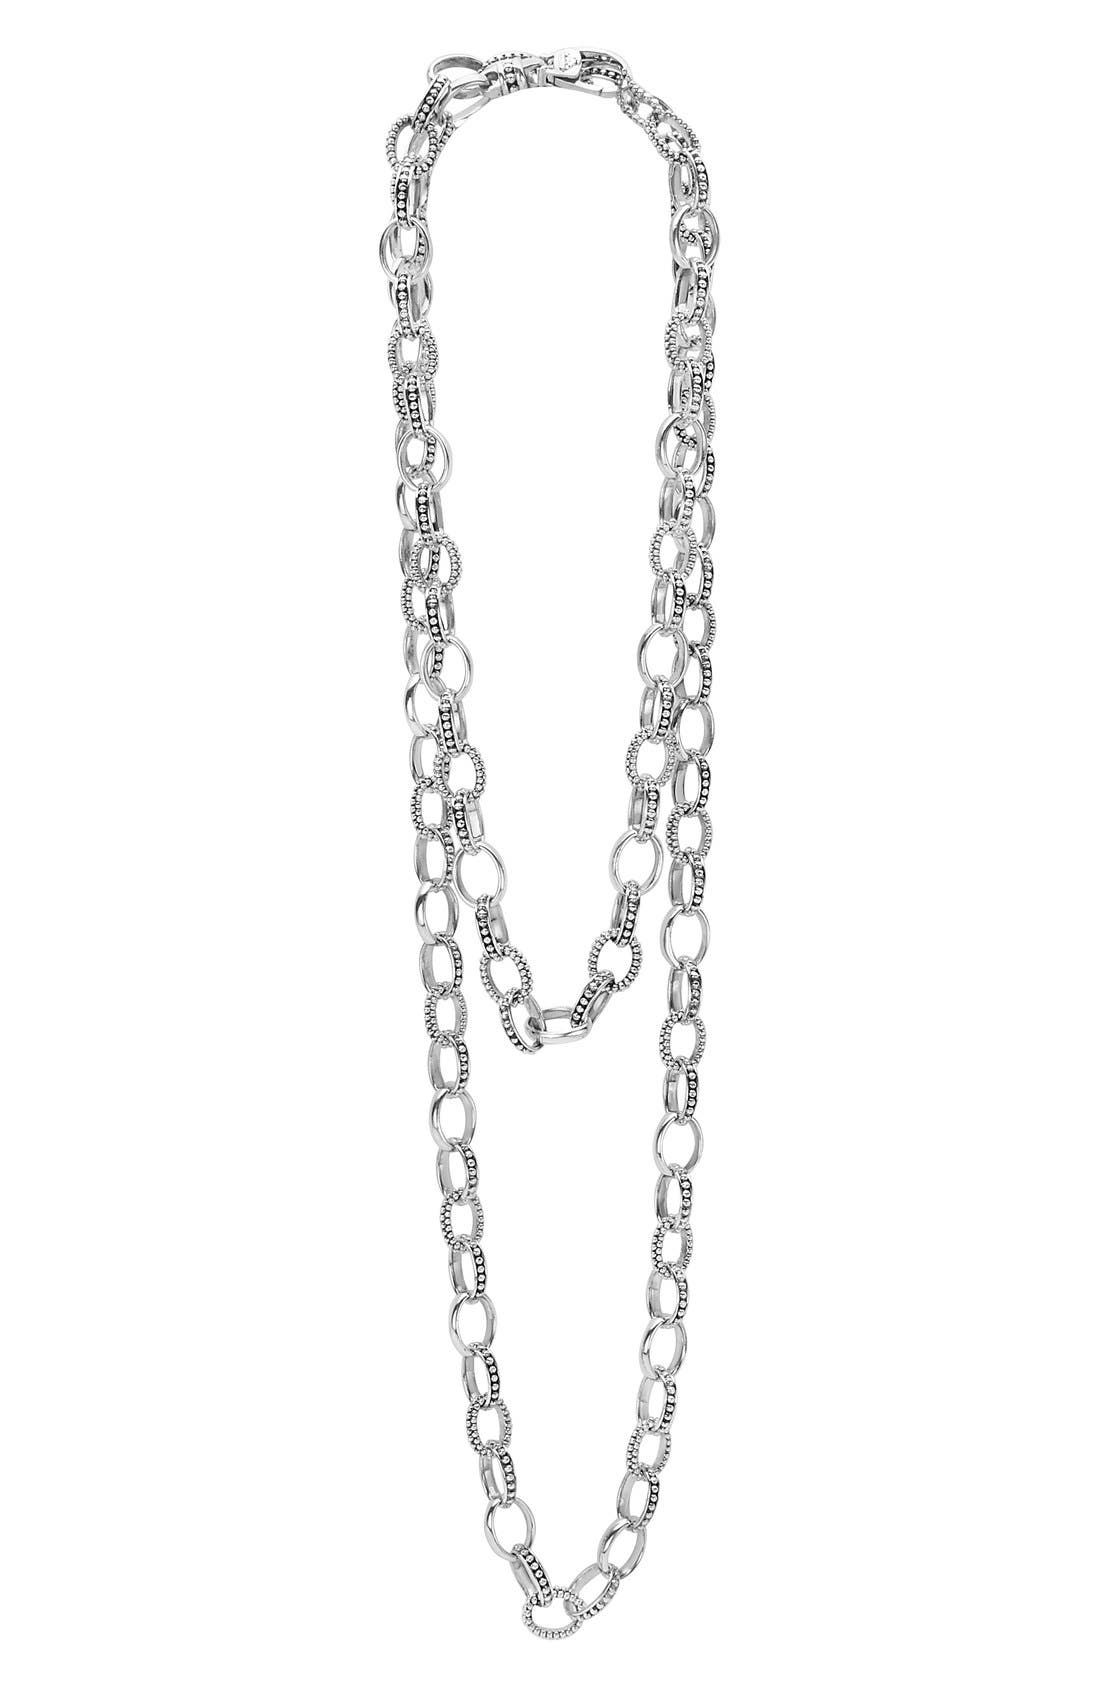 'Link' Caviar Chain Necklace,                             Main thumbnail 1, color,                             SILVER